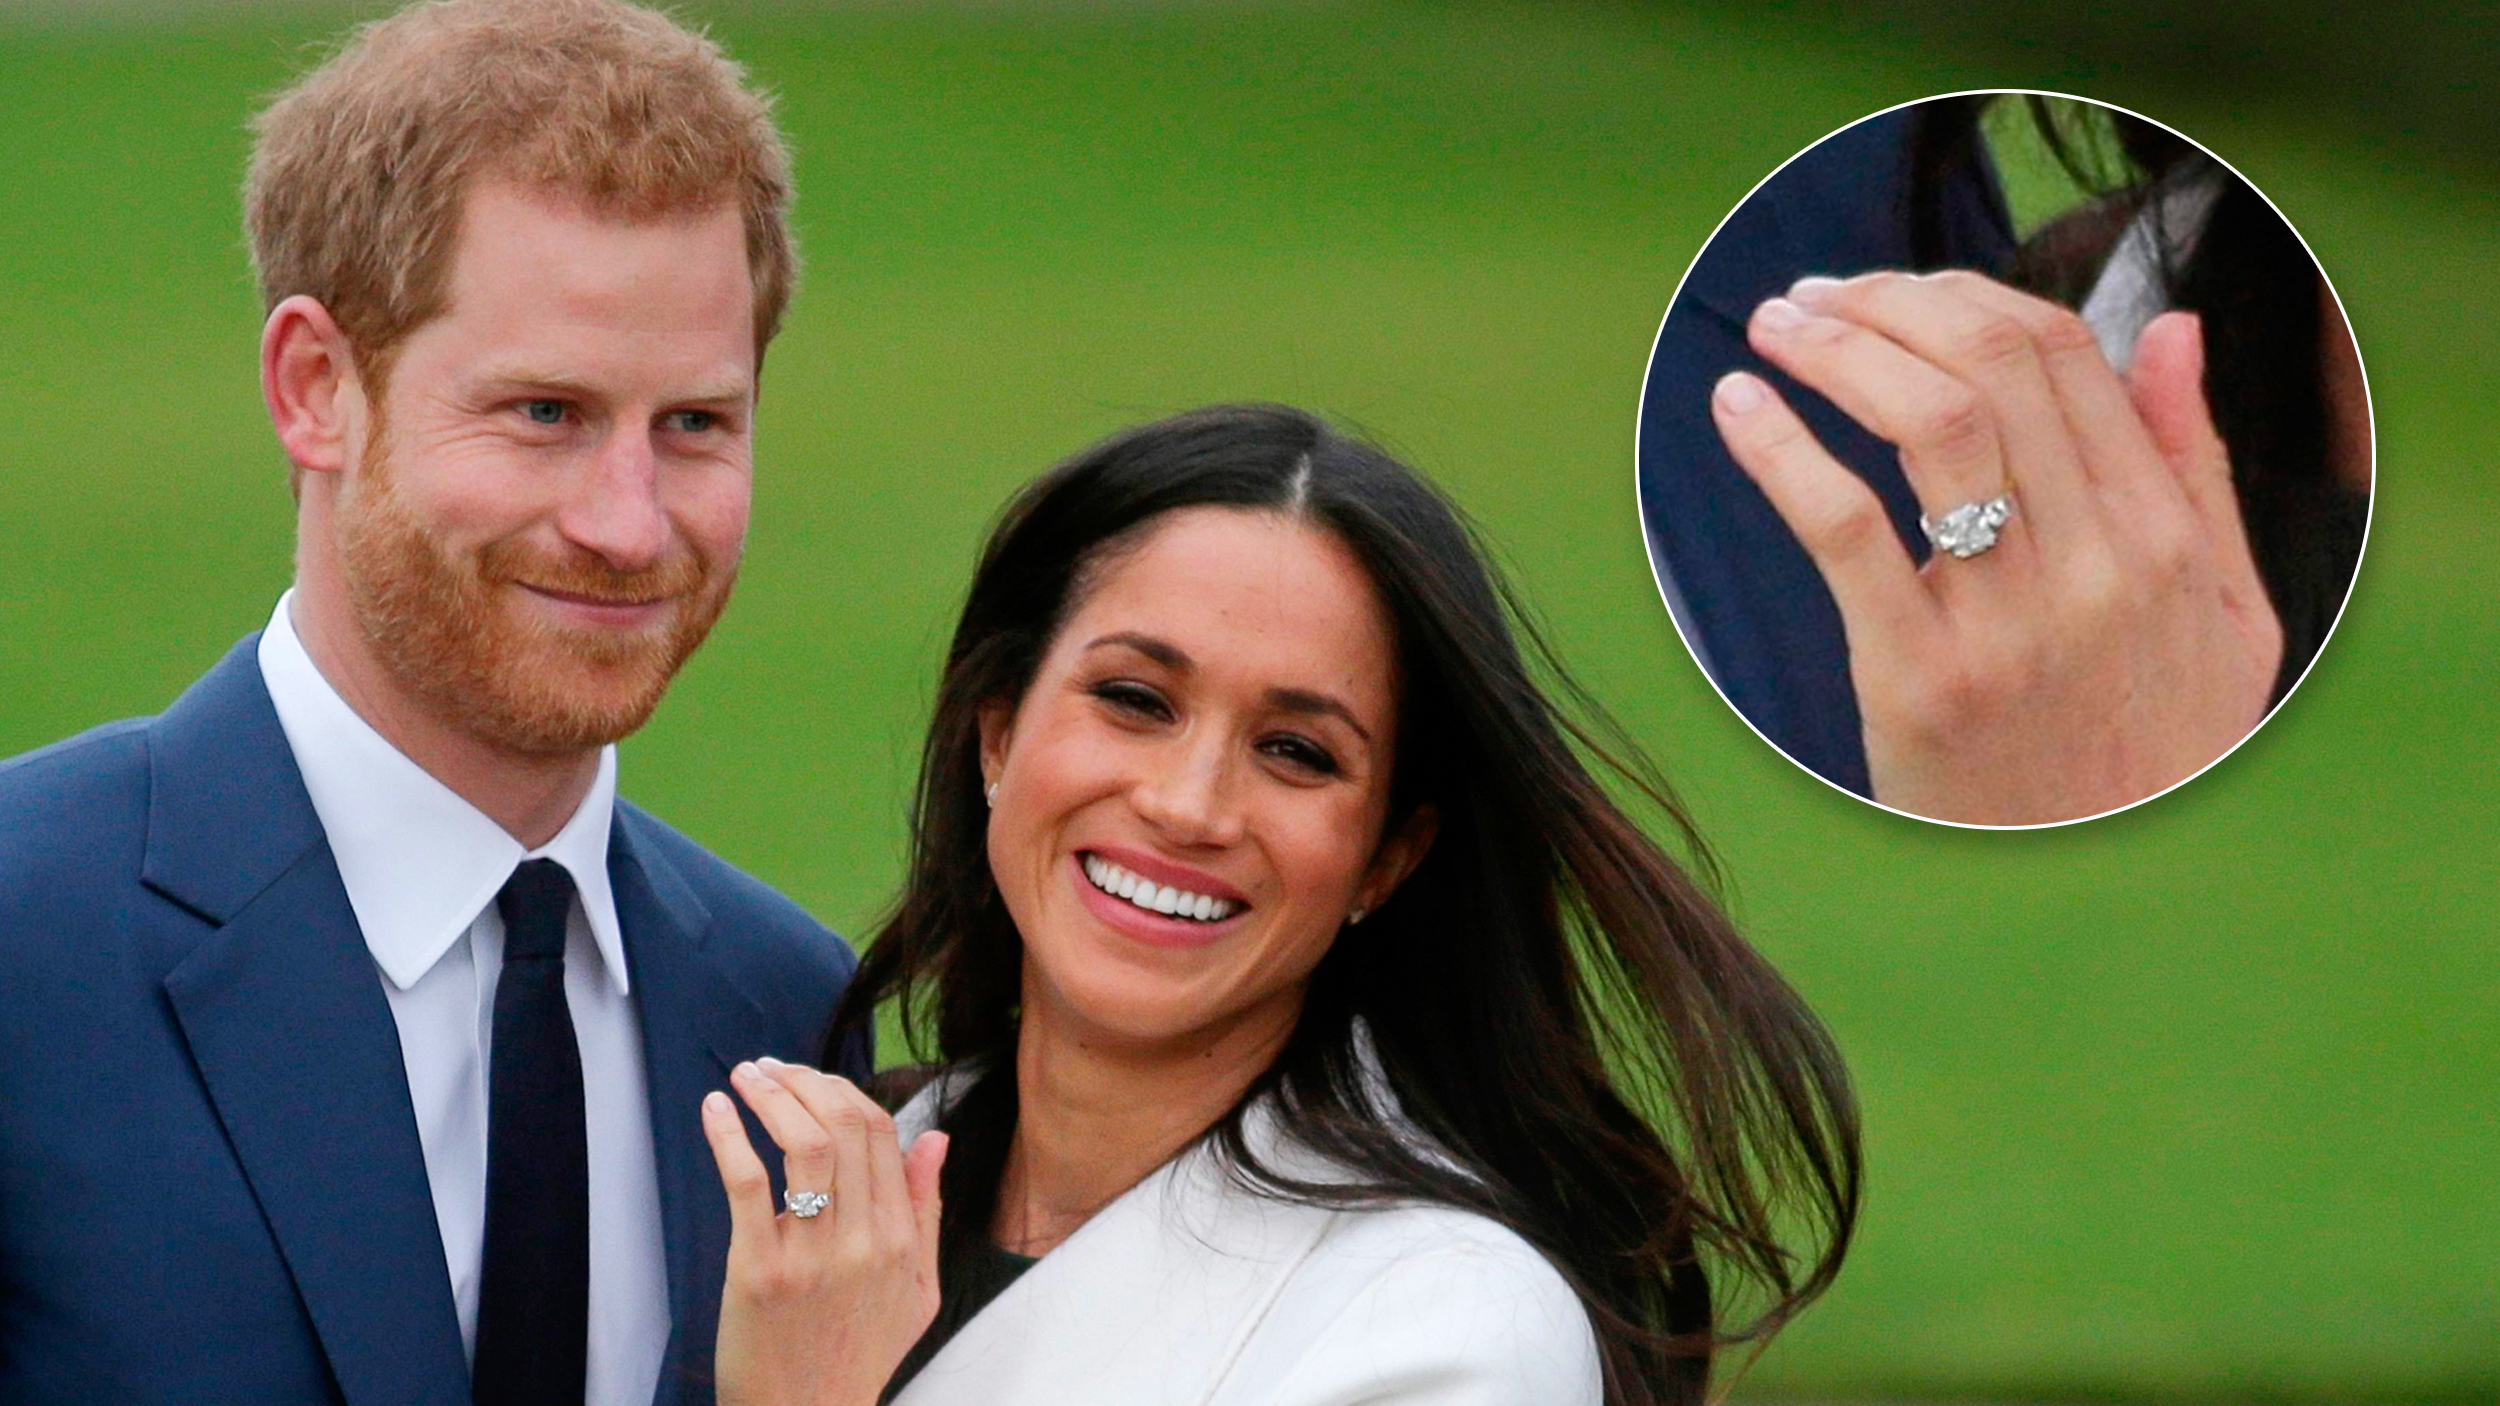 markles copy pin what engagement ring this is markle meghan stone see easy how it royal rings s royalty to shape